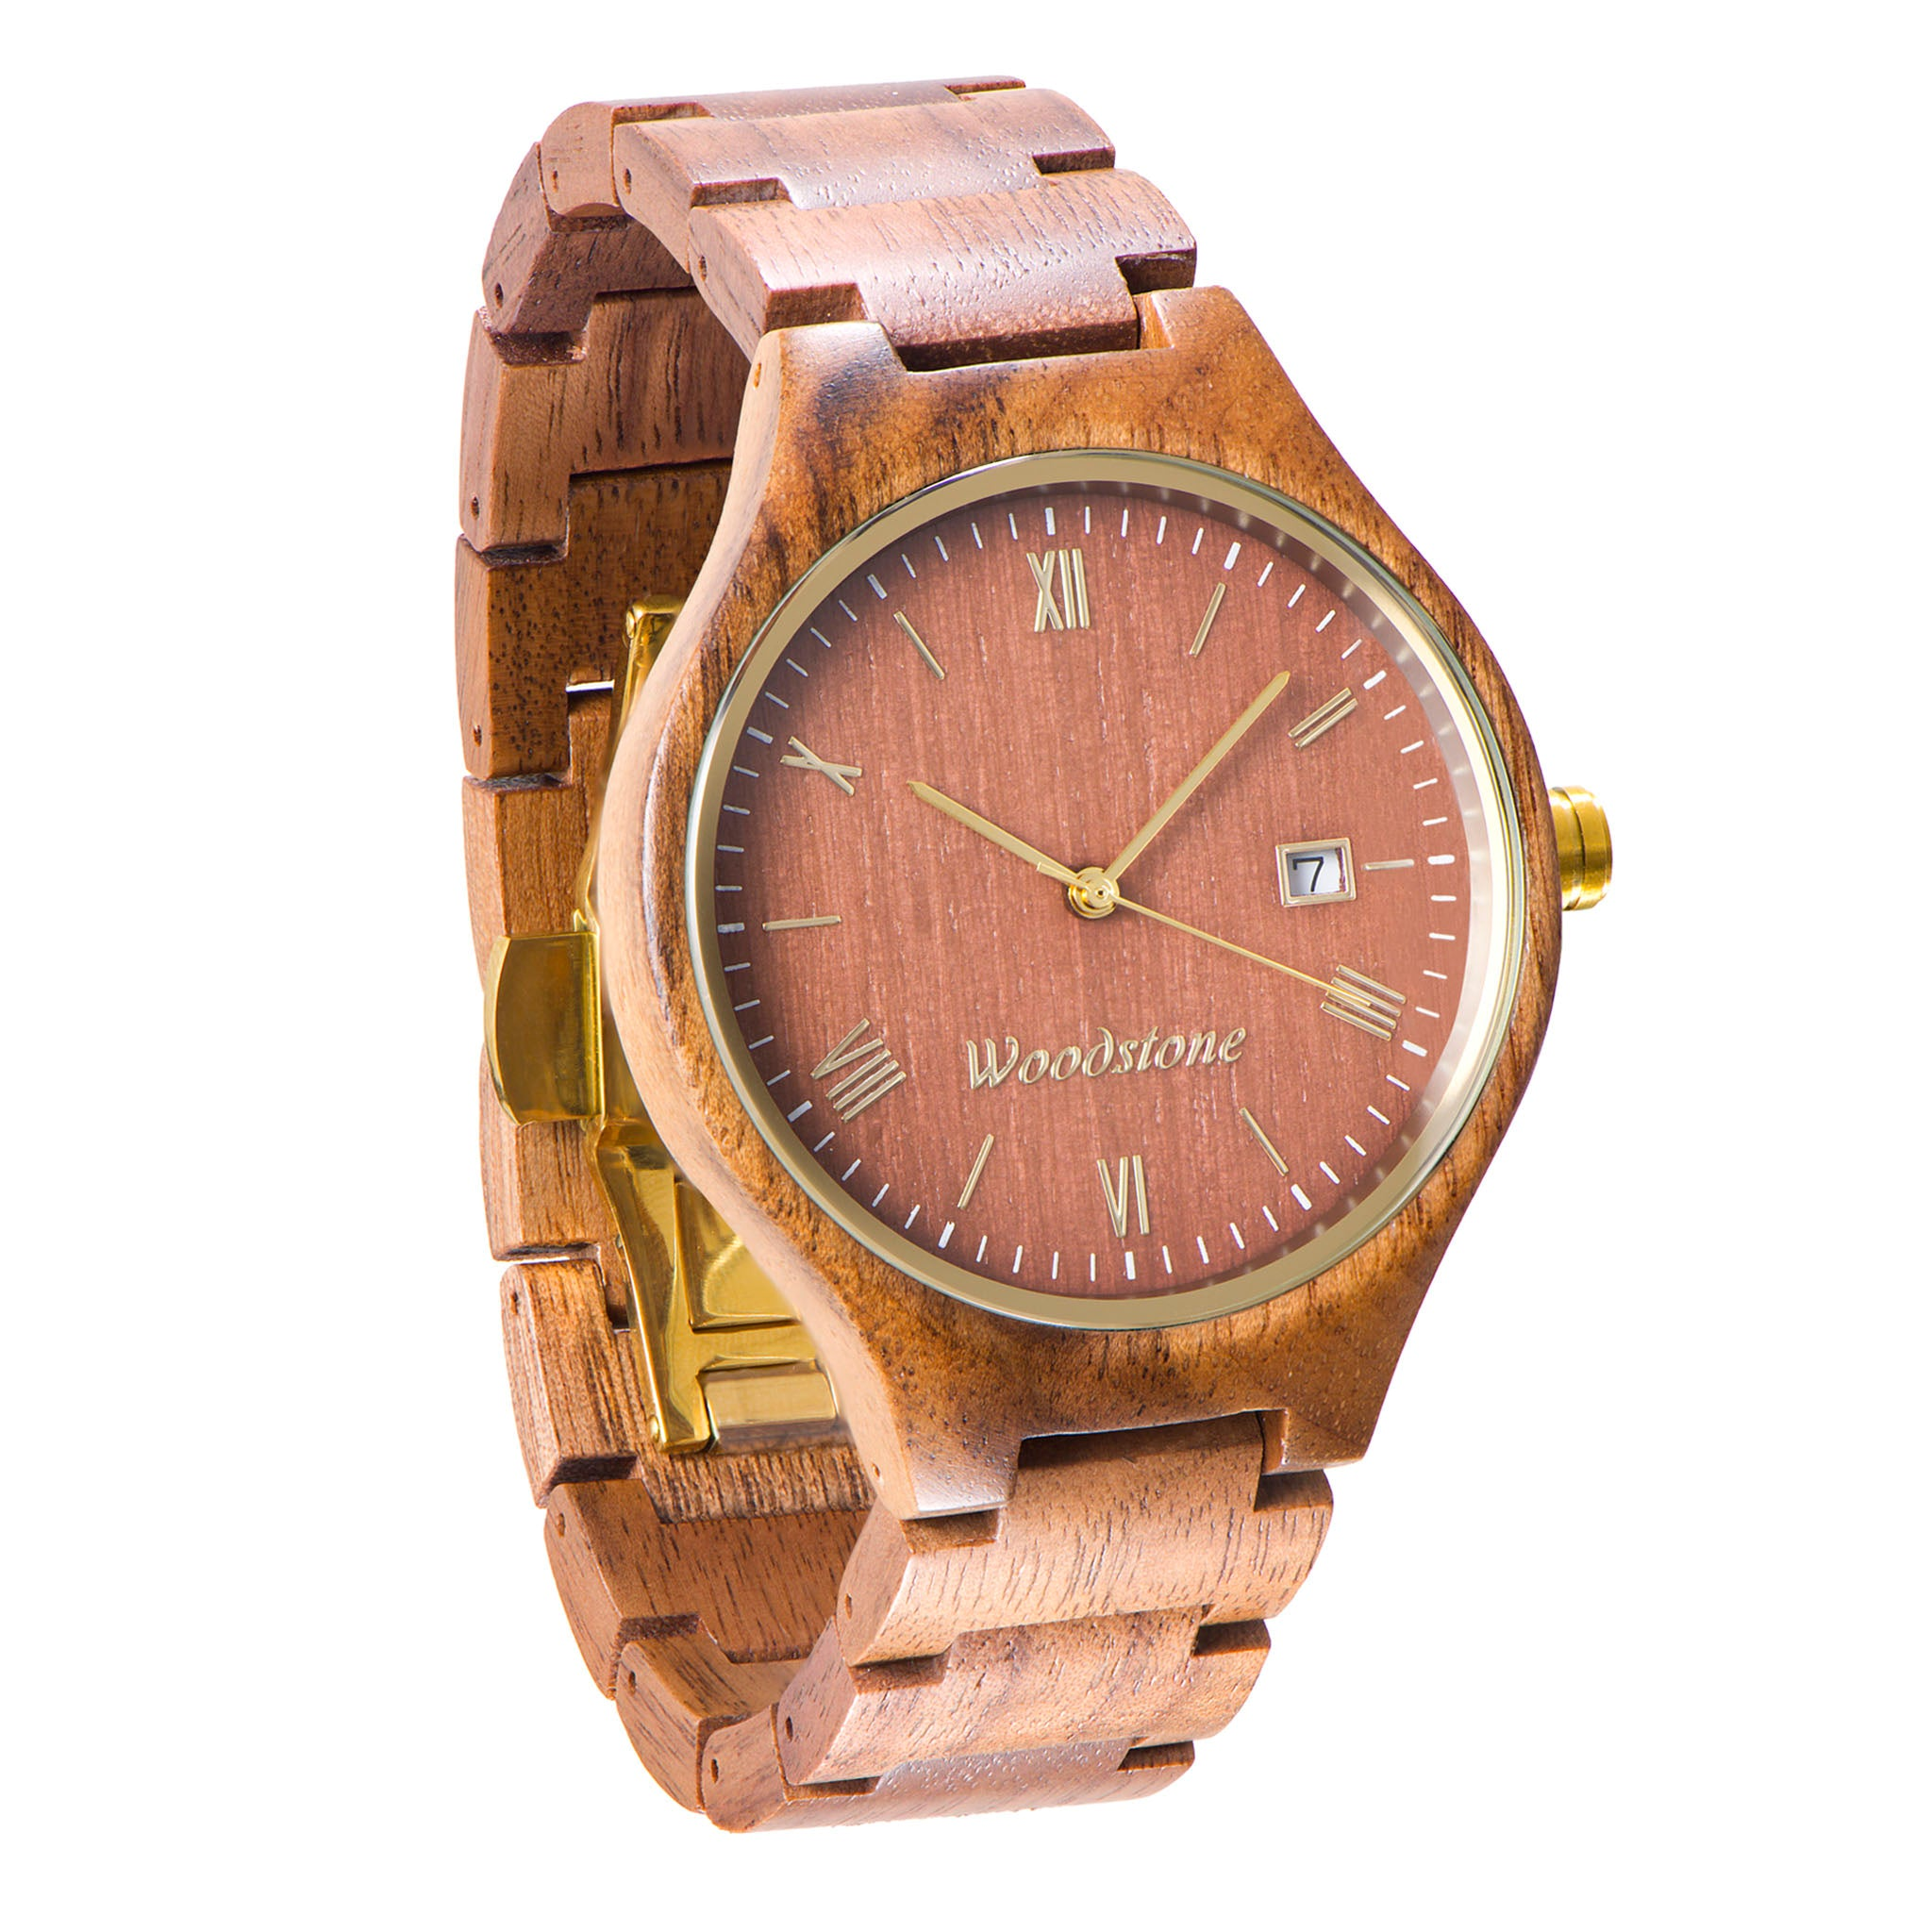 woodstone watch high rome watches natural walnut quality wood price wooden